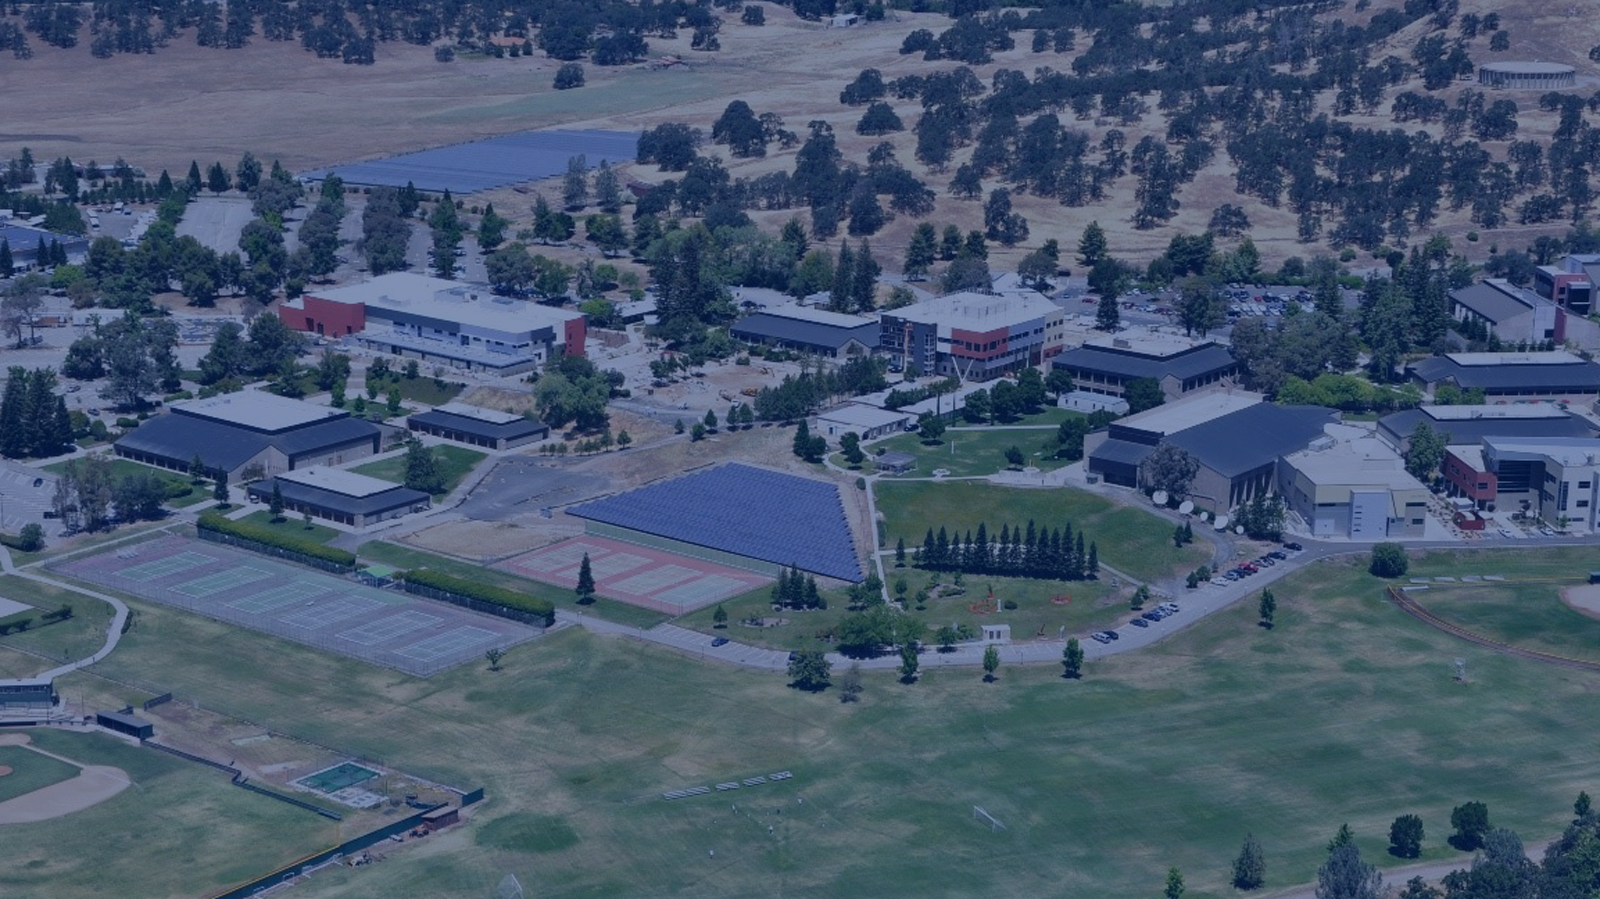 "<h4>Butte College, California</h4> <h5>In 2011, Butte College became the nation's first college campus to become ""grid positive,"" meaning that the college generated more electricity than it used, thanks to 25,000 solar panels installed since 2005. <a href=""#one""><u>Learn more.</u></a> </h5> <em>Butte College</em>"